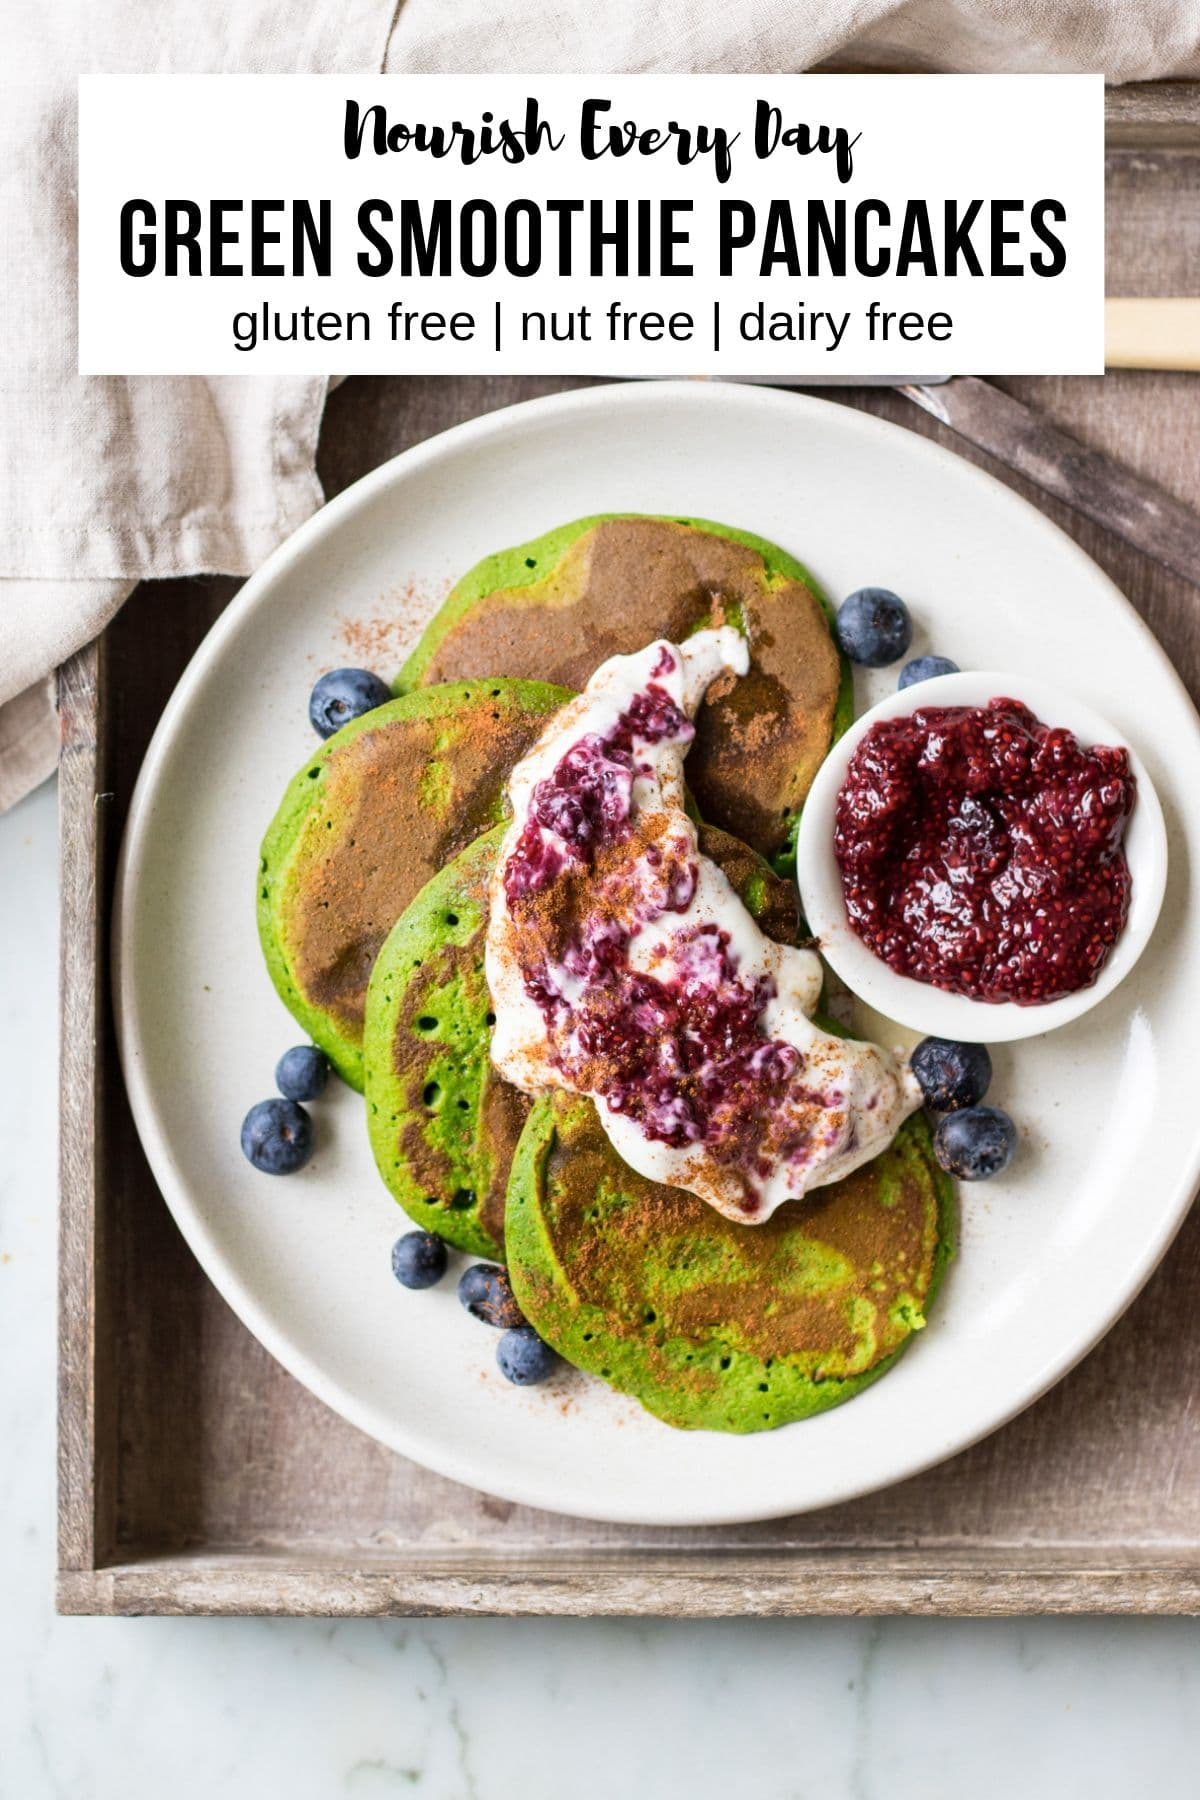 Green Smoothie Pancakes Recipe Pin by Nourish Every Day